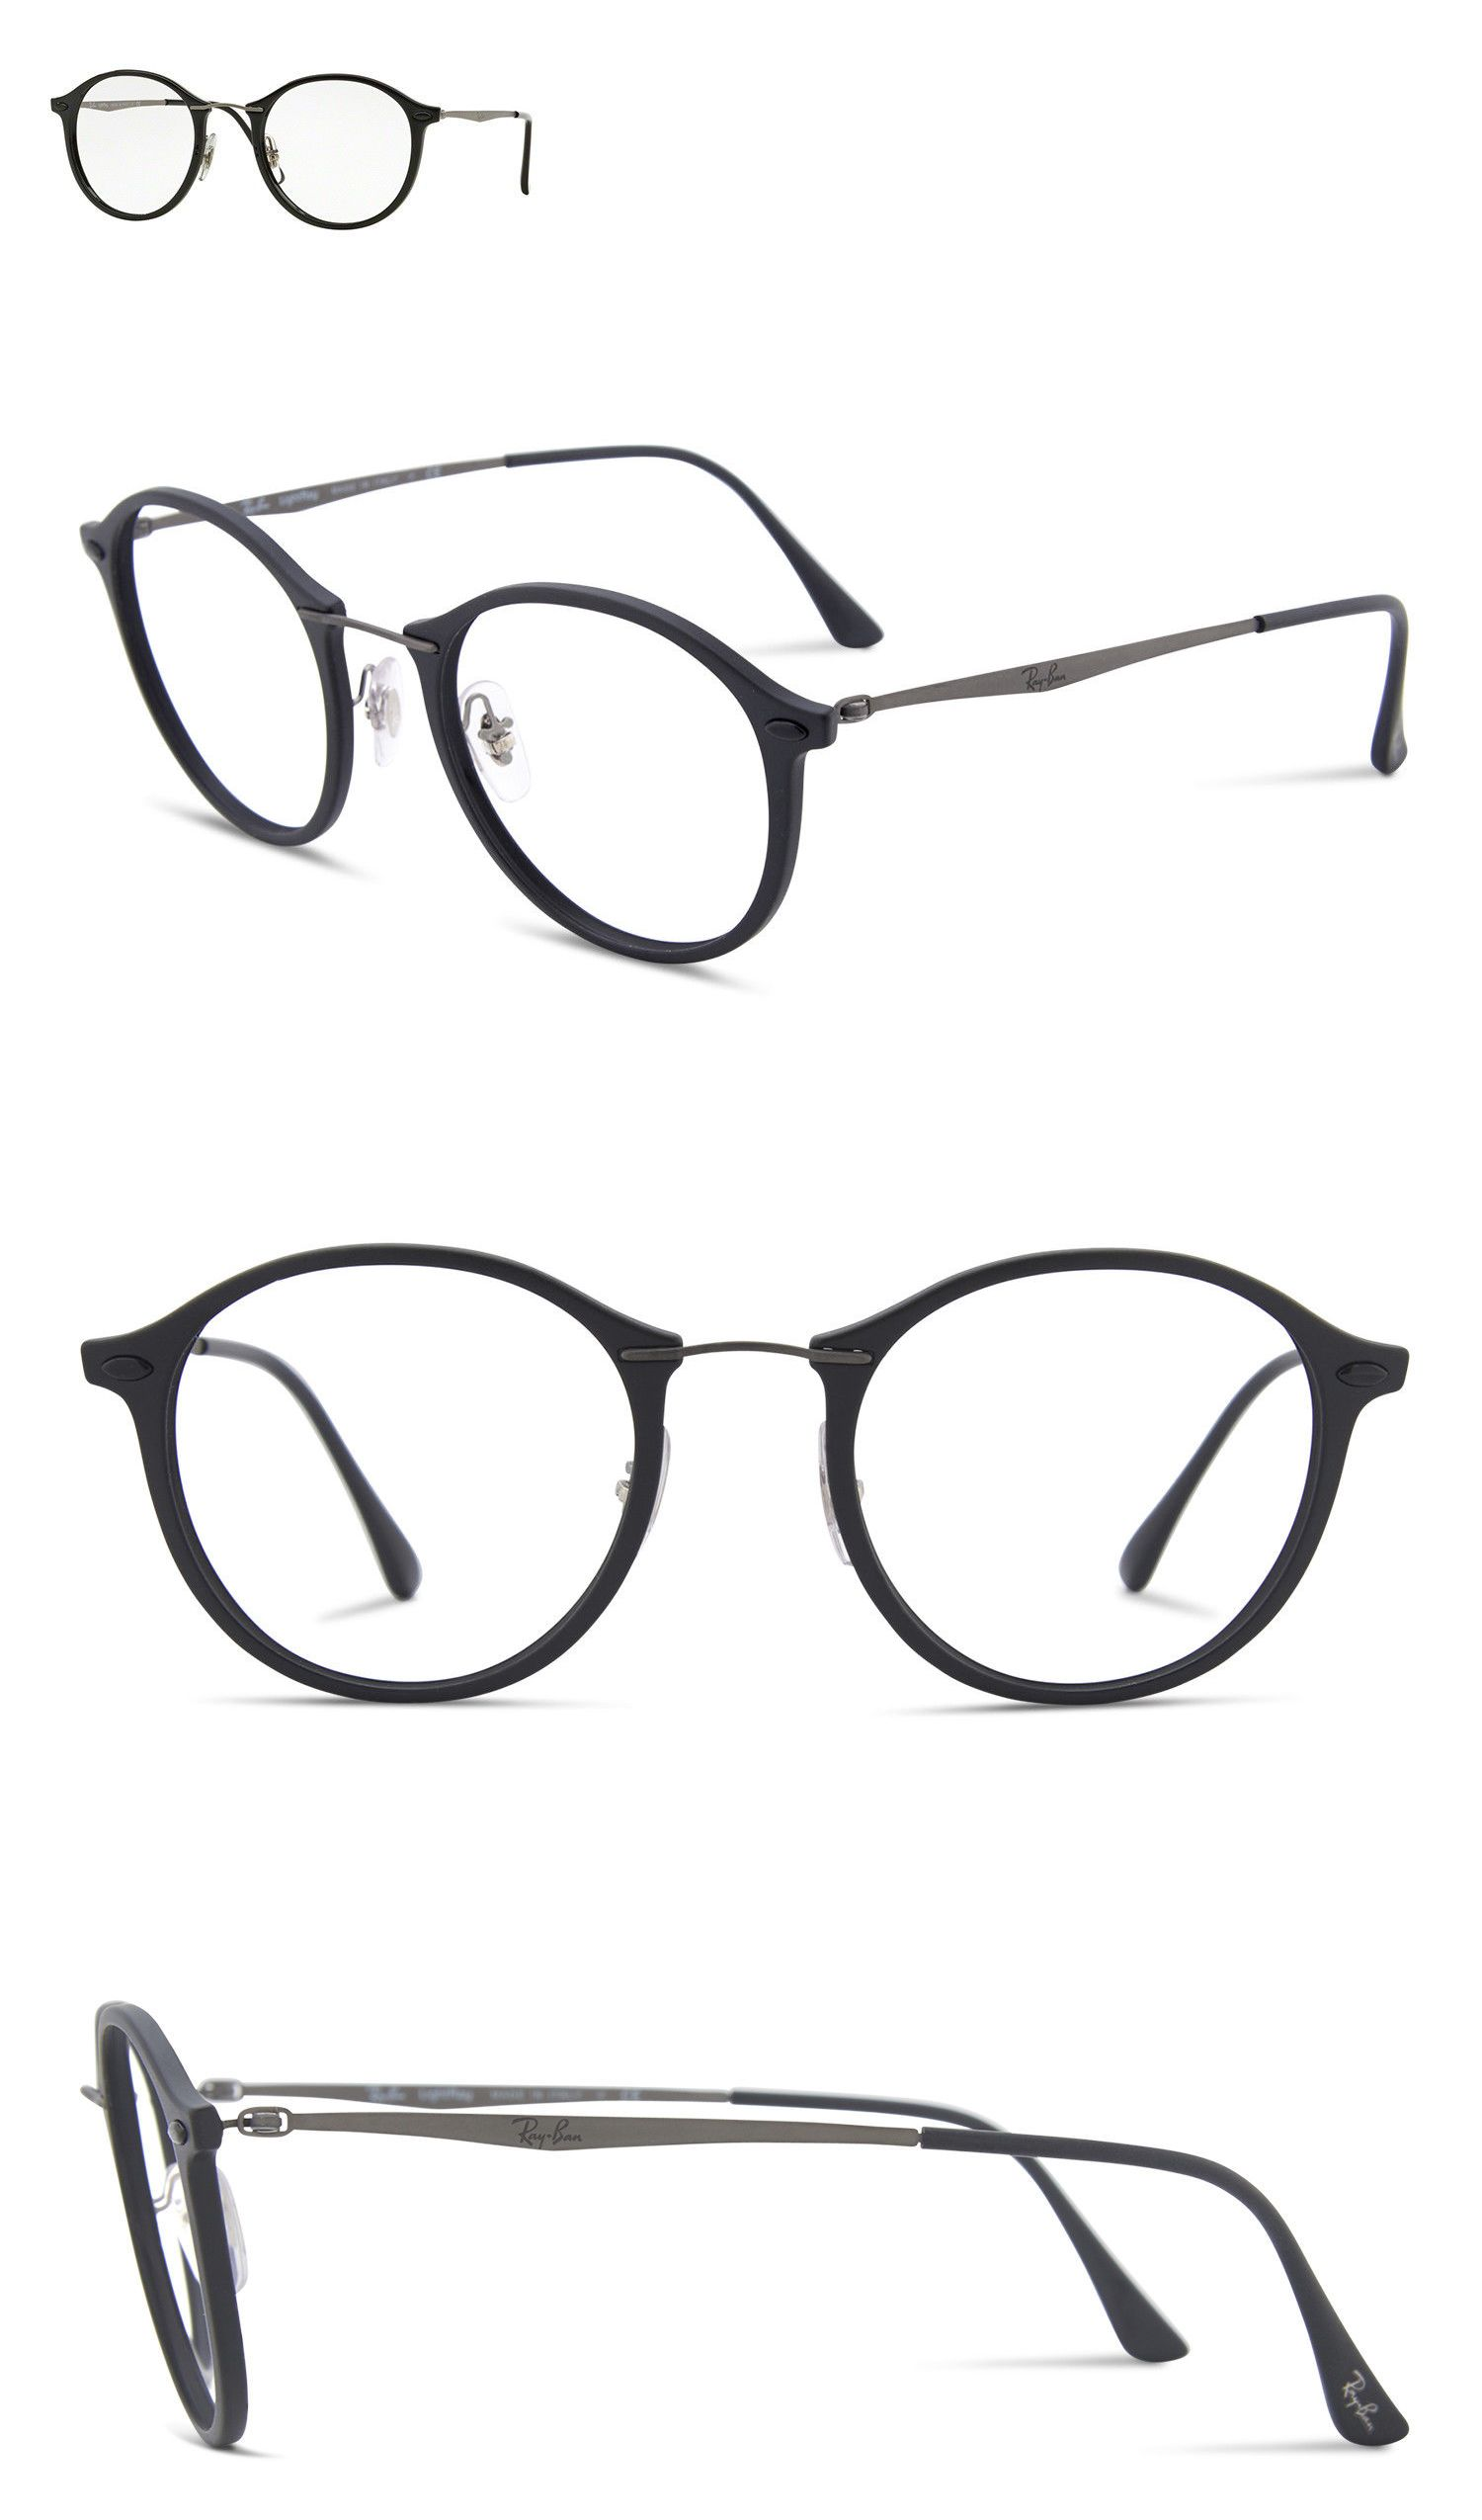 9729bfb422 Fashion Eyewear Clear Glasses 179244  Ray-Ban Rb7073 2000 Lightray Black  Frame W Gunmetal Temples 47Mm Rx Frames  200 -  BUY IT NOW ONLY   69.89 on  eBay!